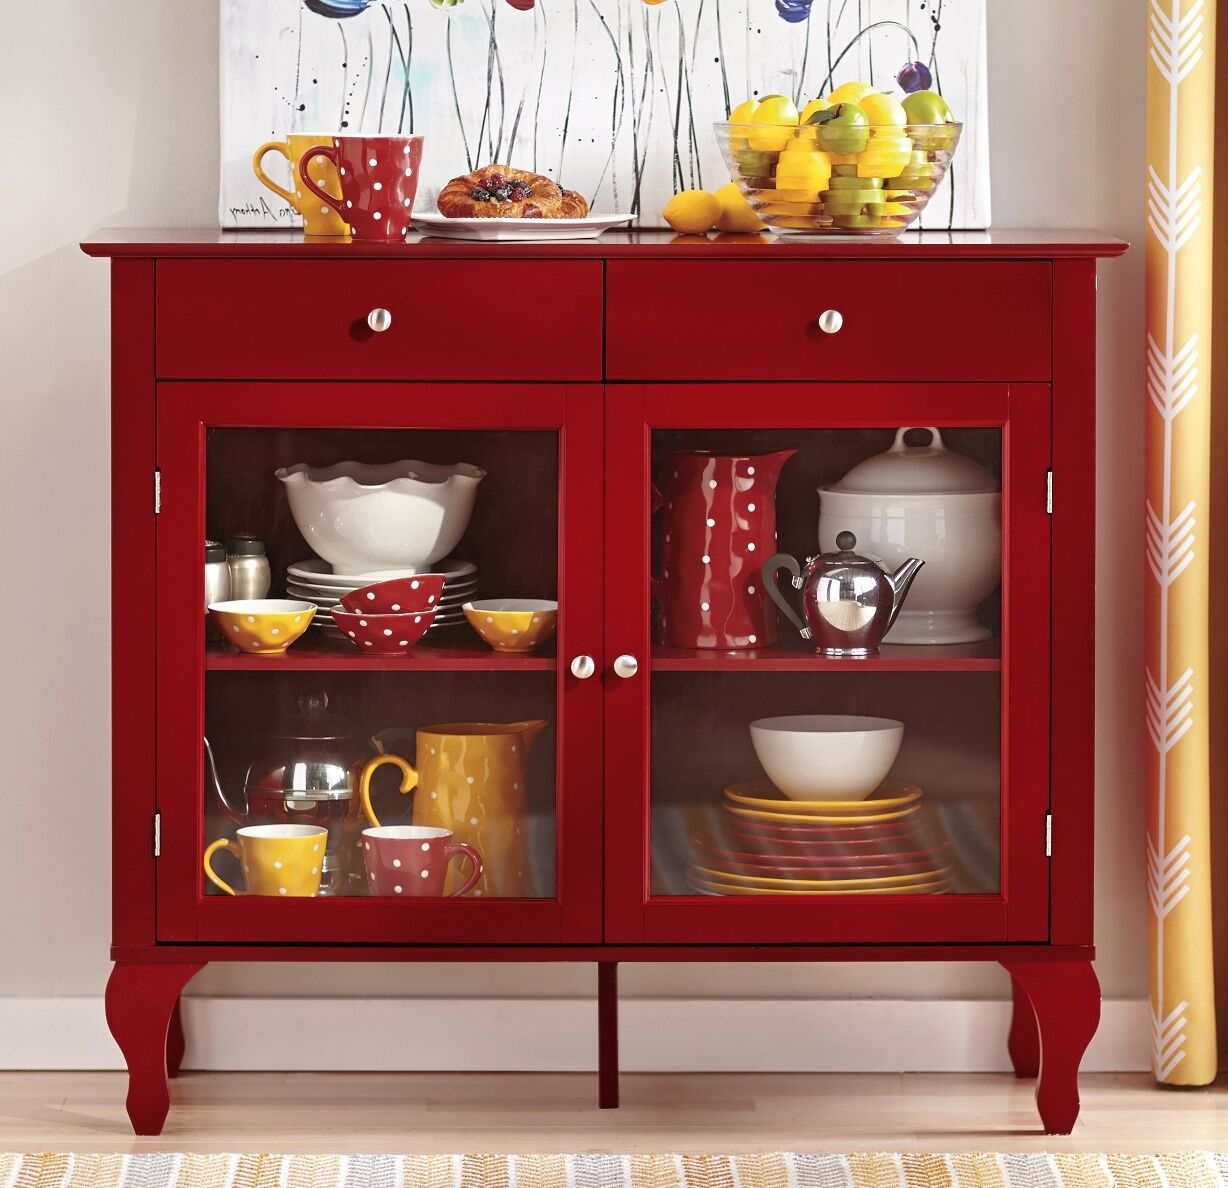 Ordinaire Small Buffet Cabinet Dining Room Storage Cabinet Red Buffet Table Sideboard  NEW 1 Of 4FREE Shipping See More